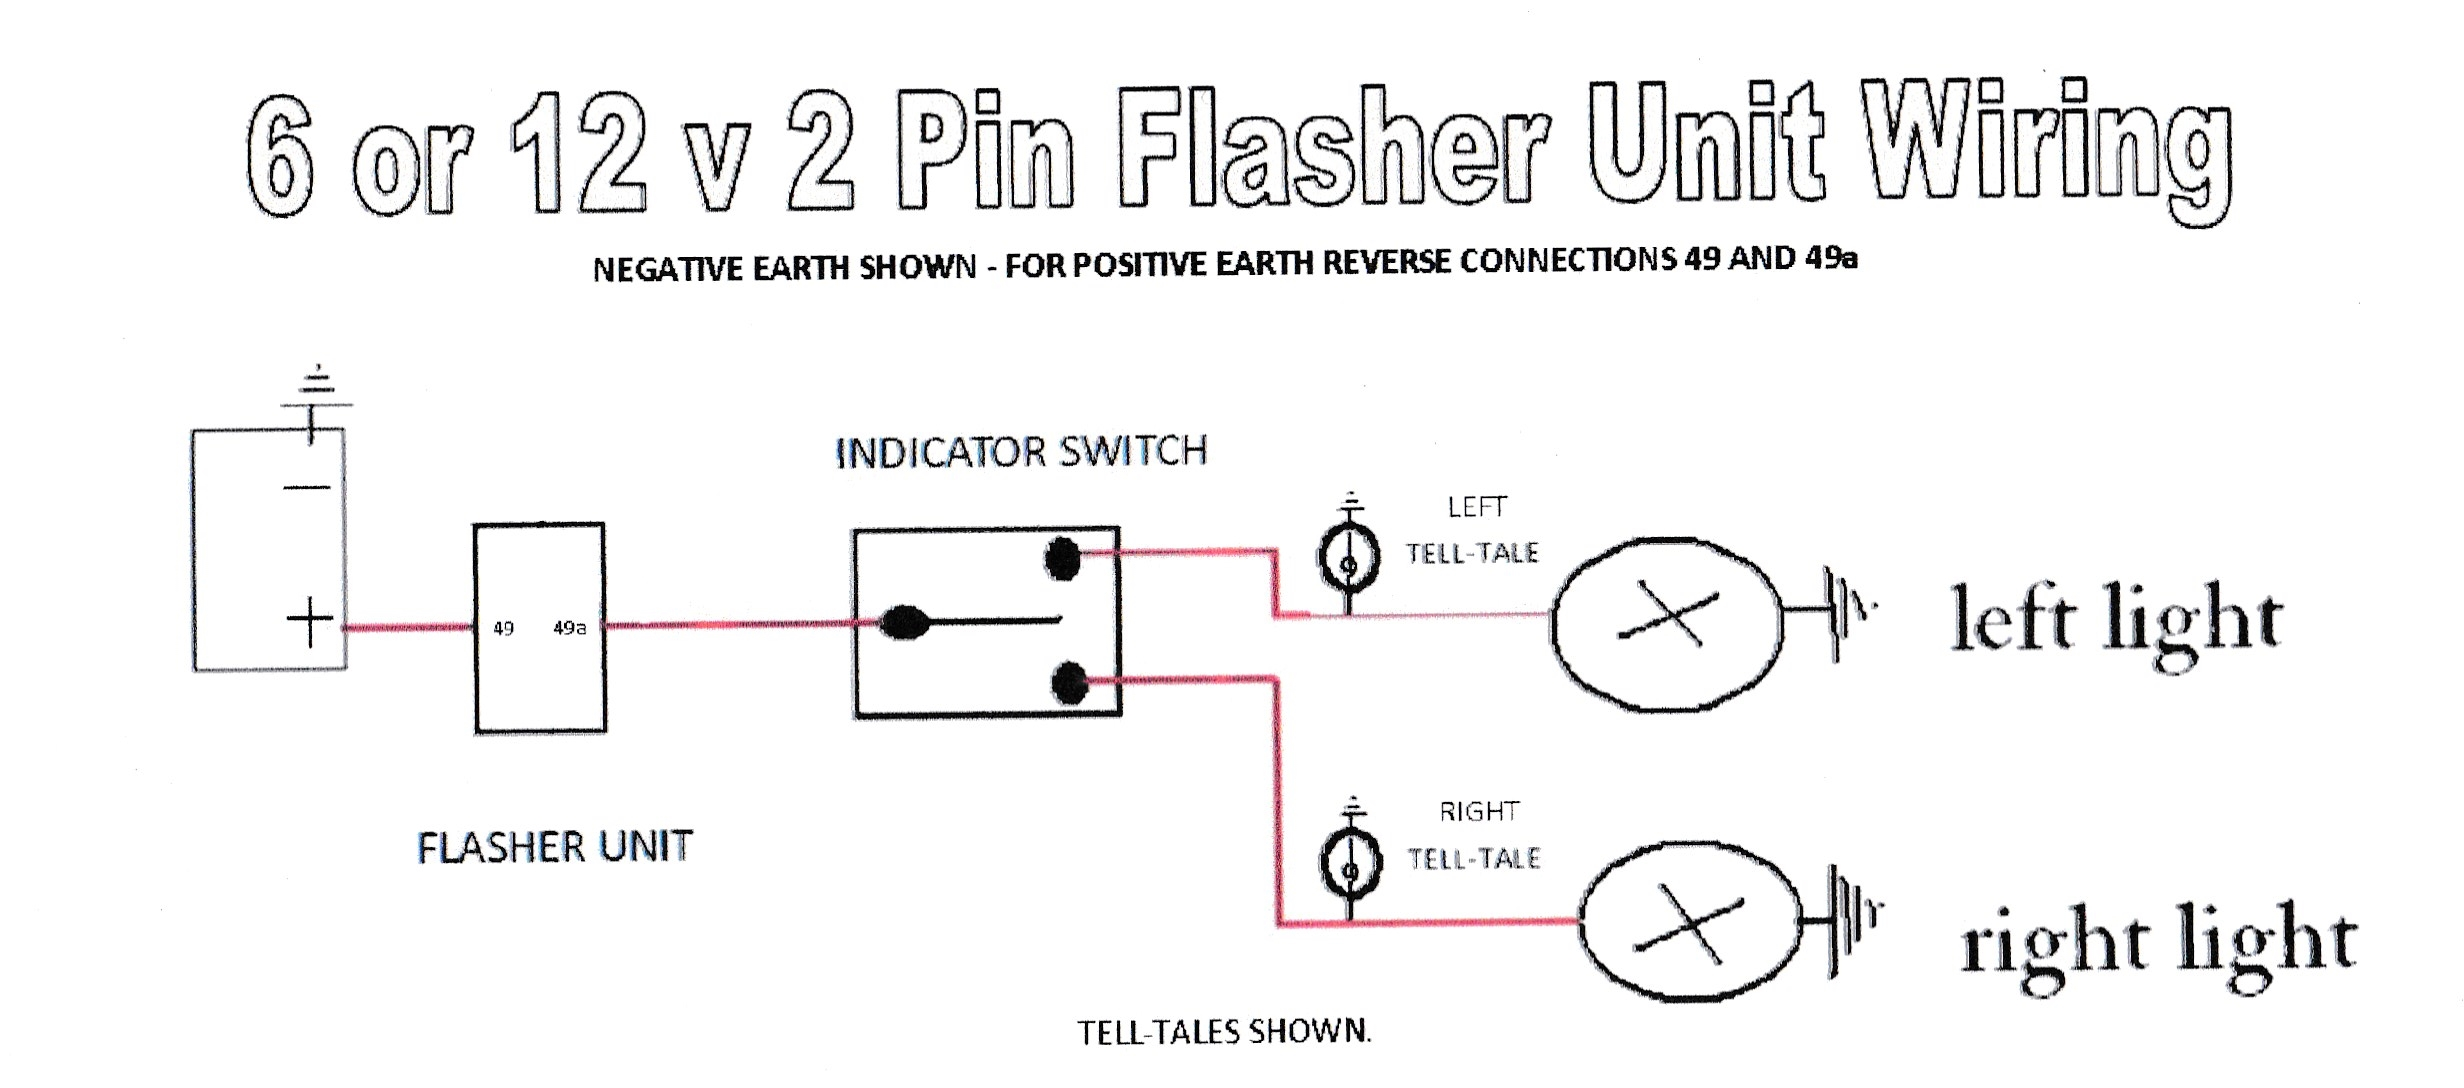 DIAGRAM] 3 Pin Flasher Unit Wiring Diagram FULL Version HD Quality Wiring  Diagram - THESISDIAGRAMS.CONDITIONSENSEIGNANTES.FRthesisdiagrams.conditionsenseignantes.fr